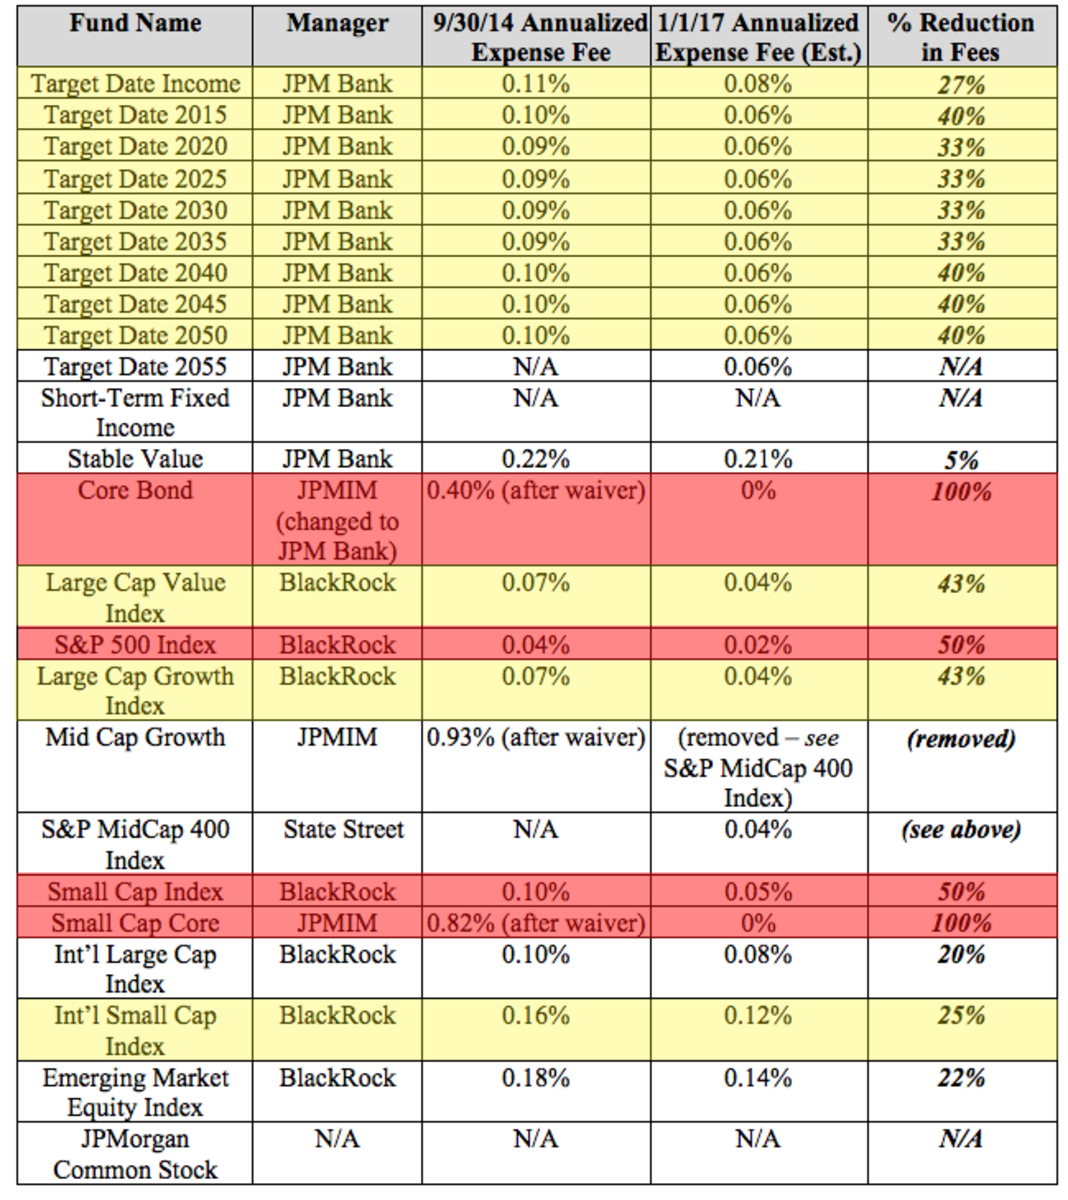 Fee reductions in JPMorgan employee 401(k)s. Red denotes reduction of 50-100%; yellow, 25-49%. Colors not in original lawsuit.